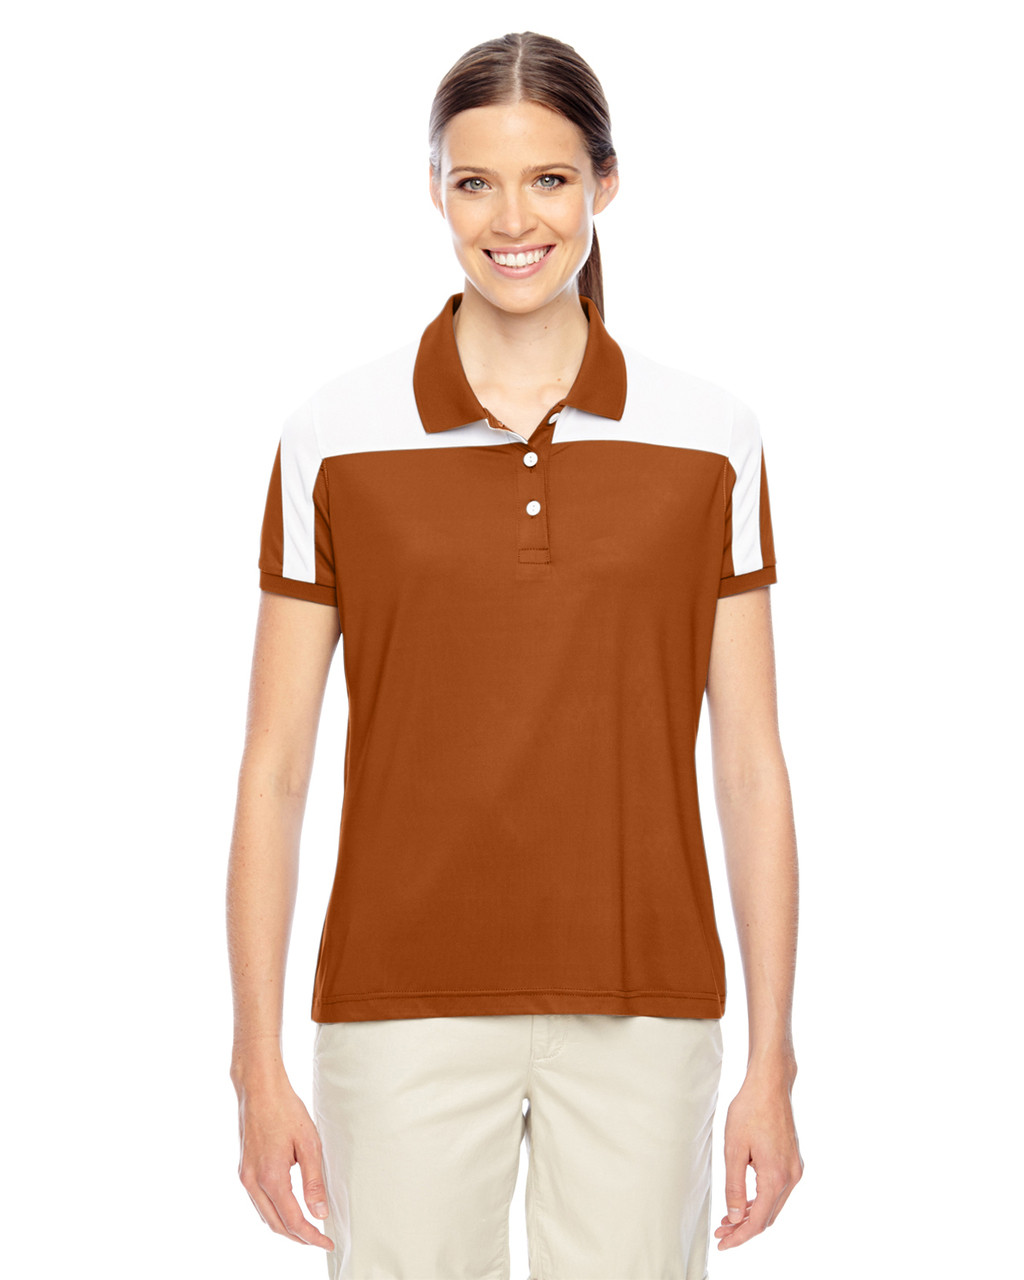 Burnt Orange/White - TT22W Team 365 Victor Performance Polo Shirt